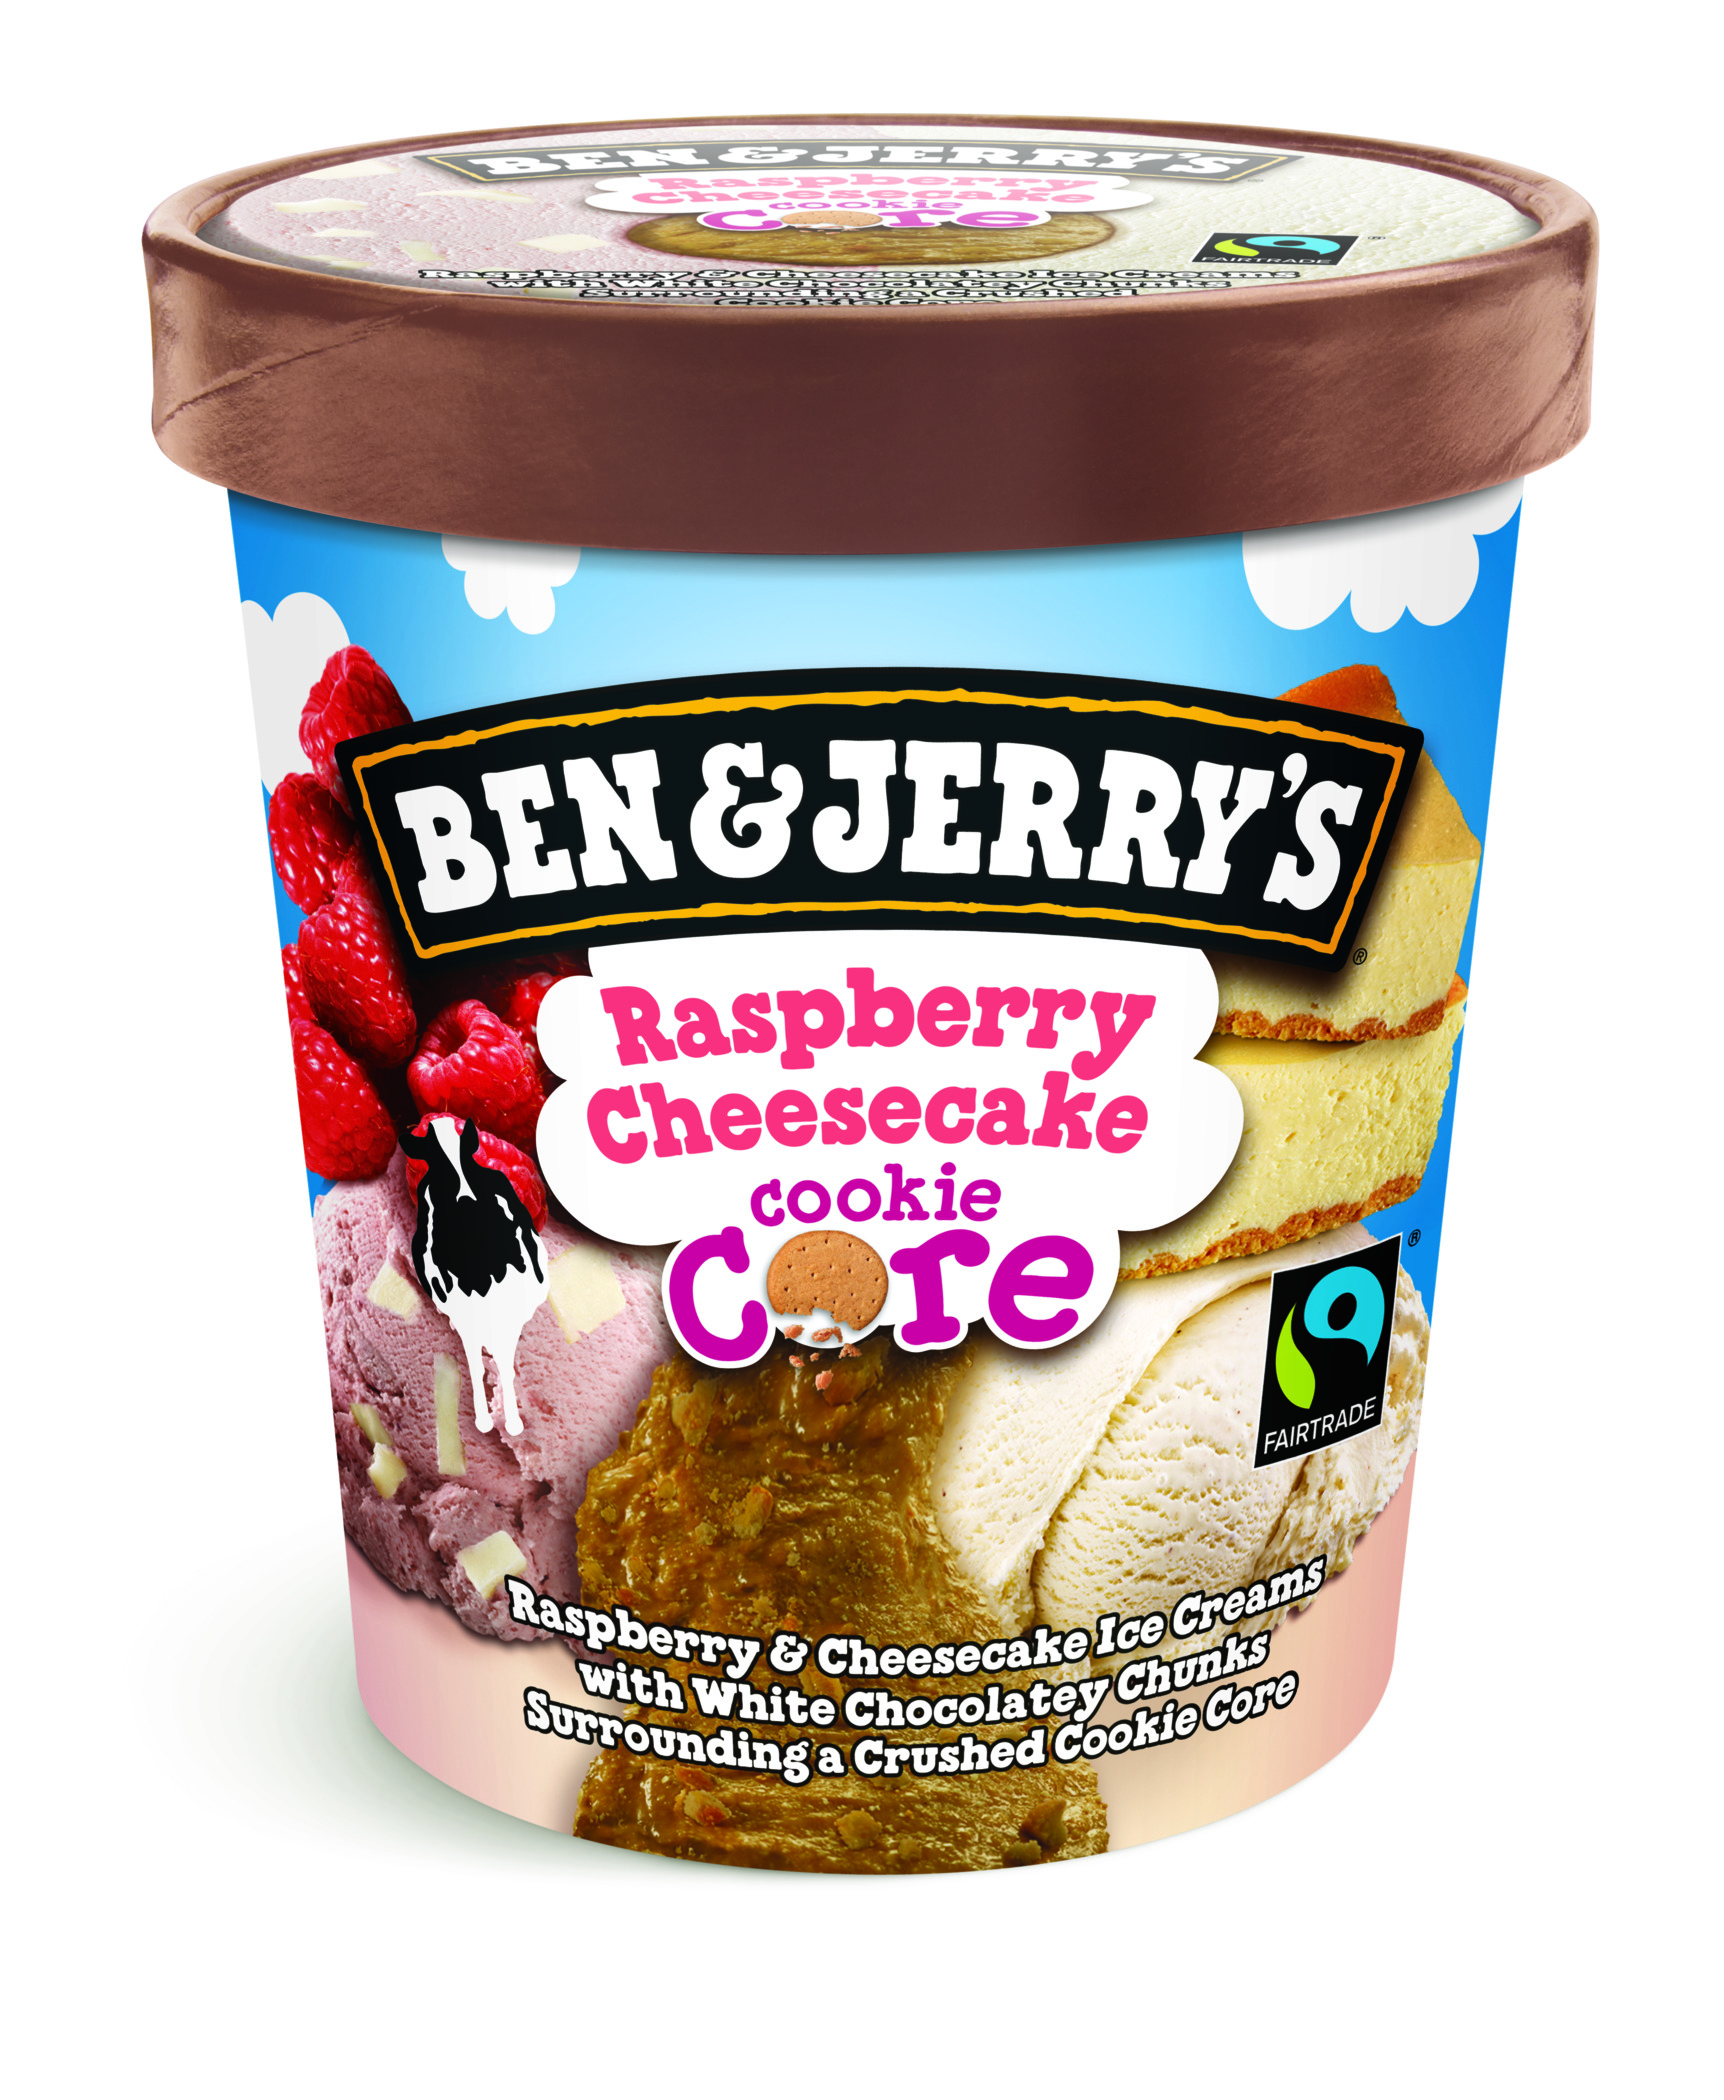 BenJerry_Cookie_Cores_Raspberry_Cheesecake_500ml_Closed_Tub.jpg